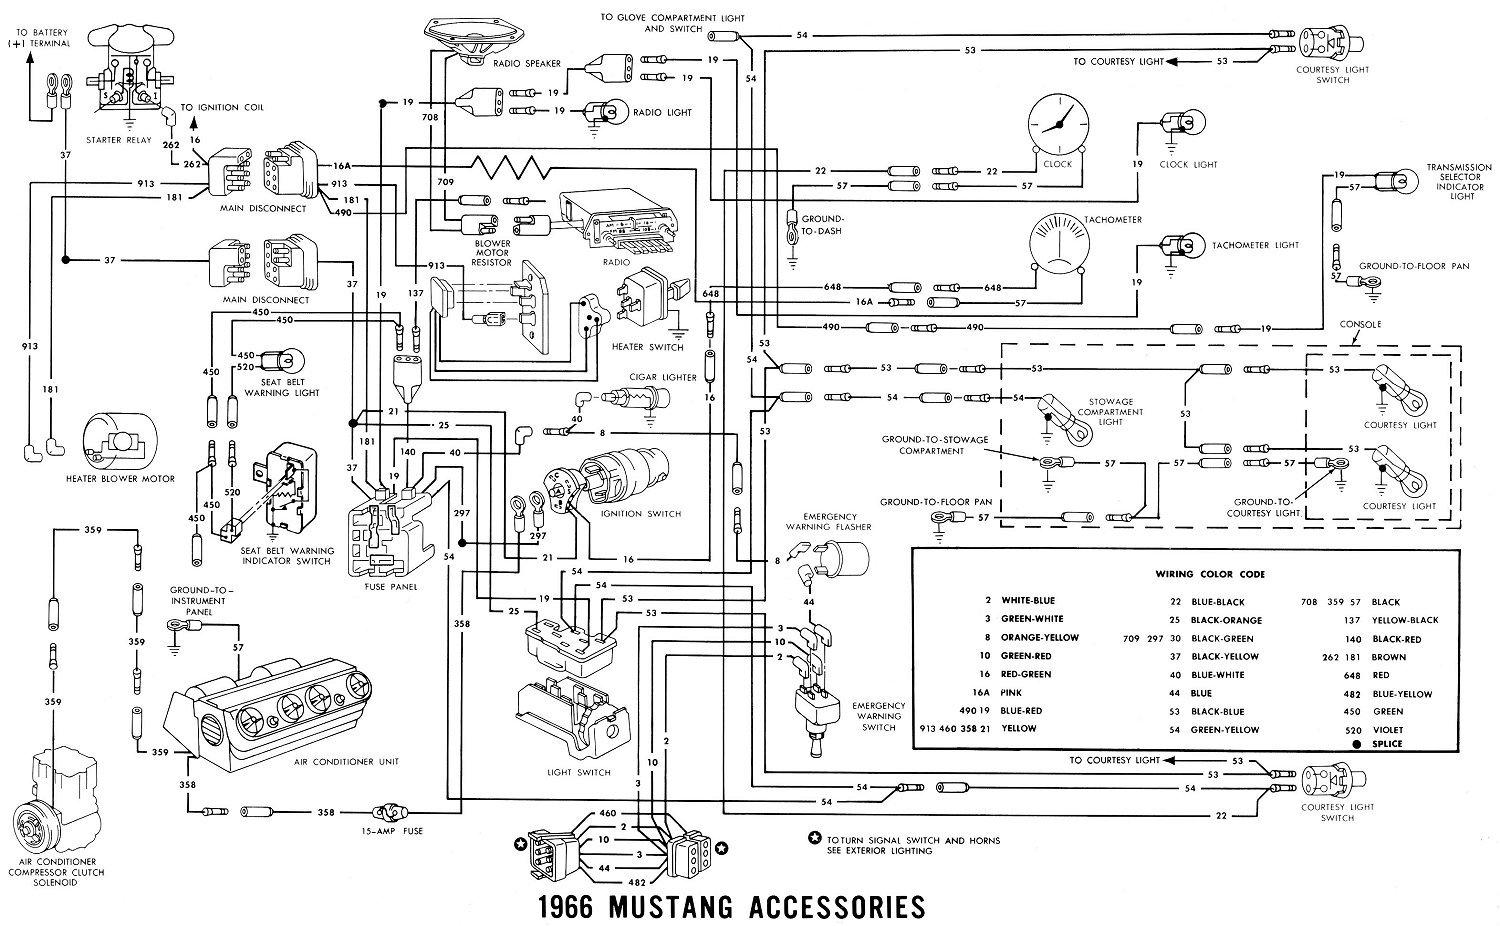 66acces1 1969 mustang dash wiring diagram 1969 mustang wiring routing 1969 mustang ignition wiring diagram at virtualis.co